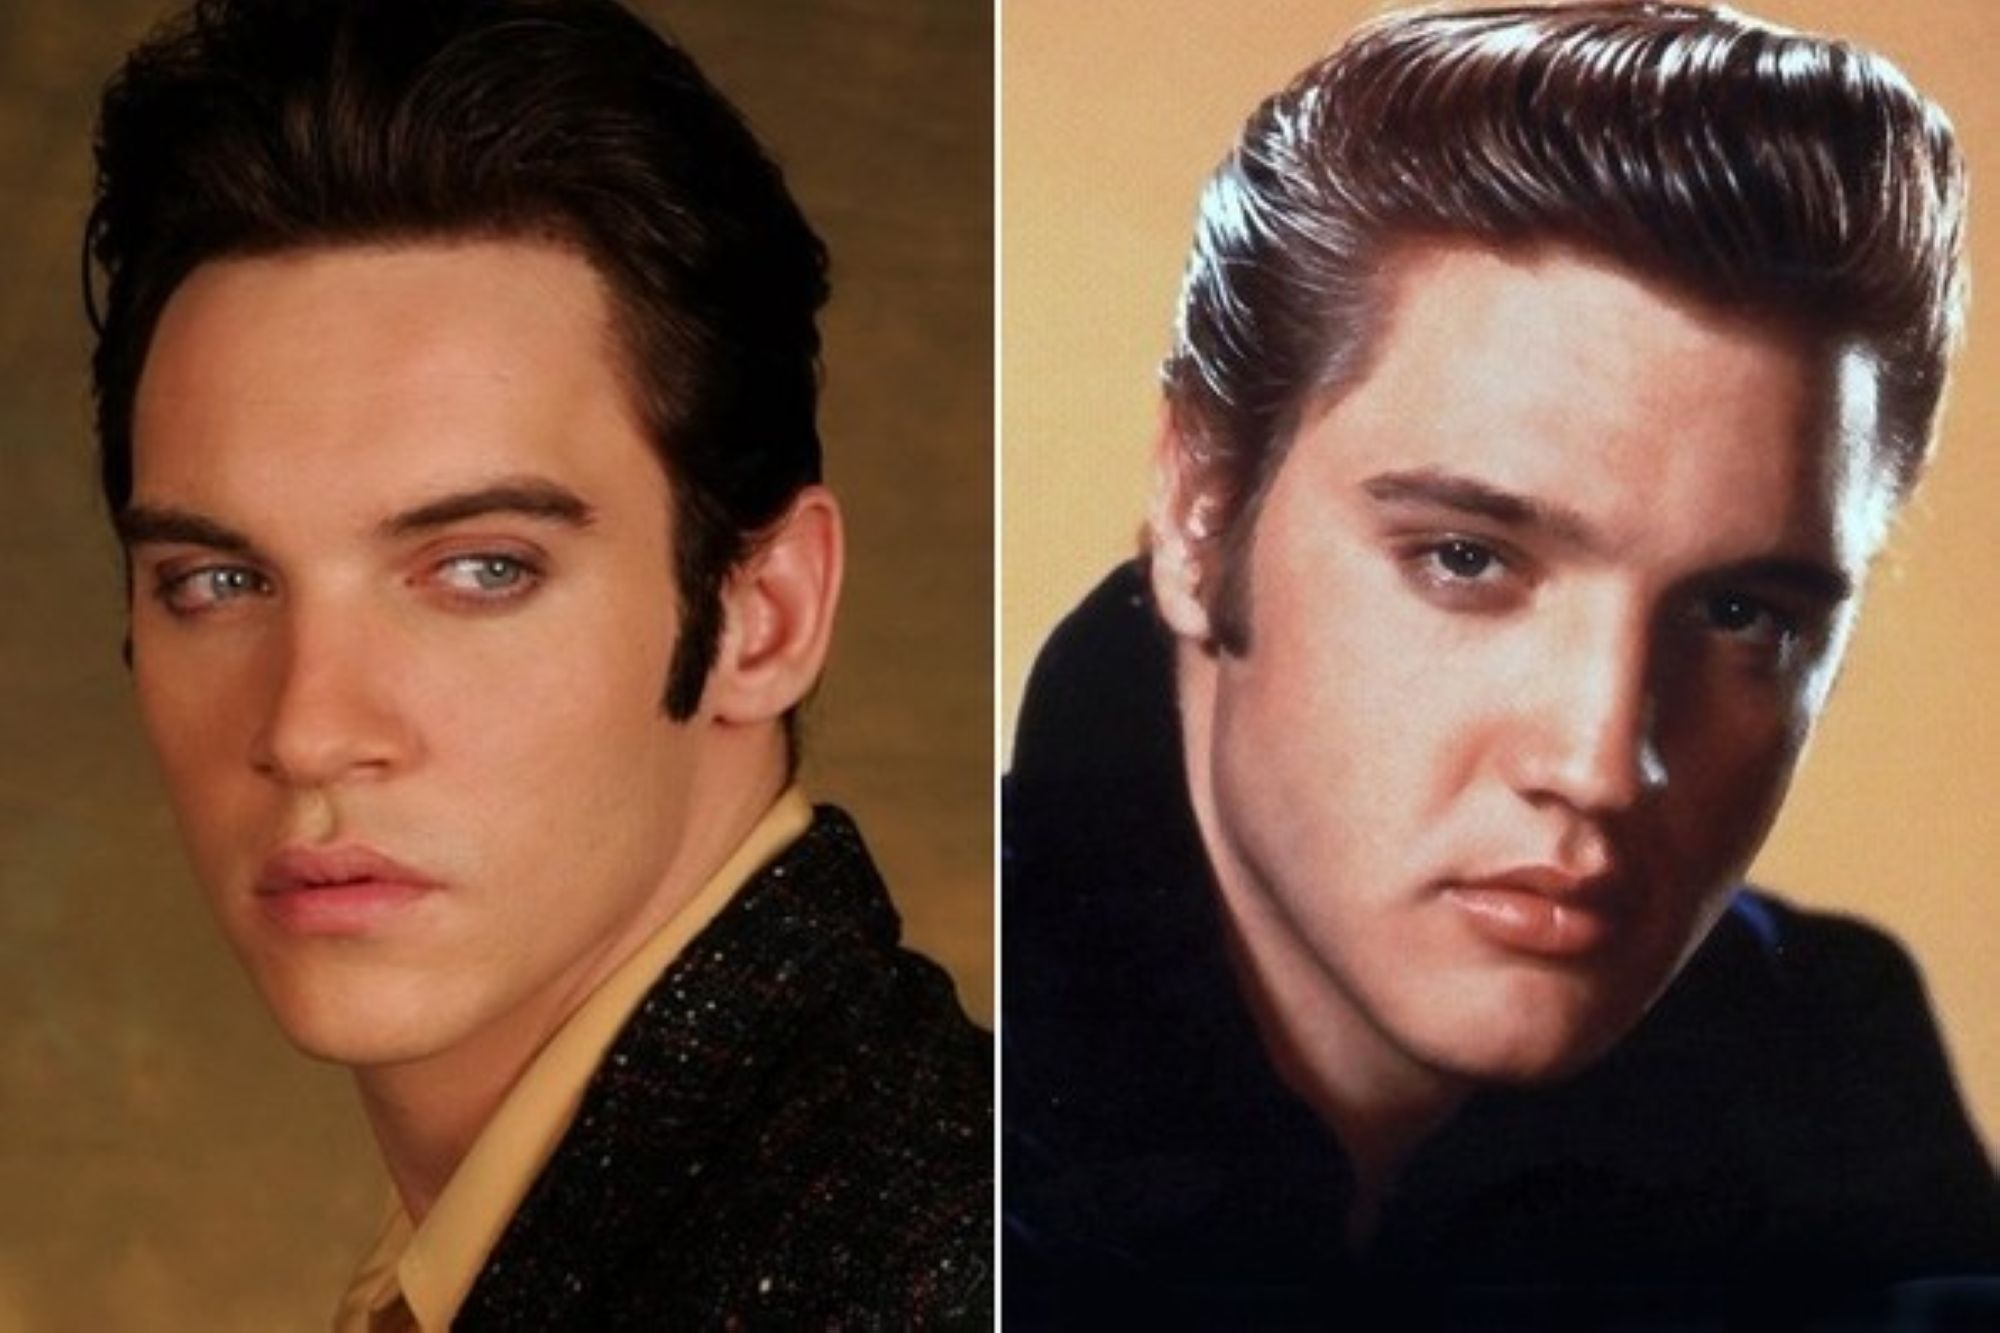 07-Rys-Meyers-vs-Elvis_1